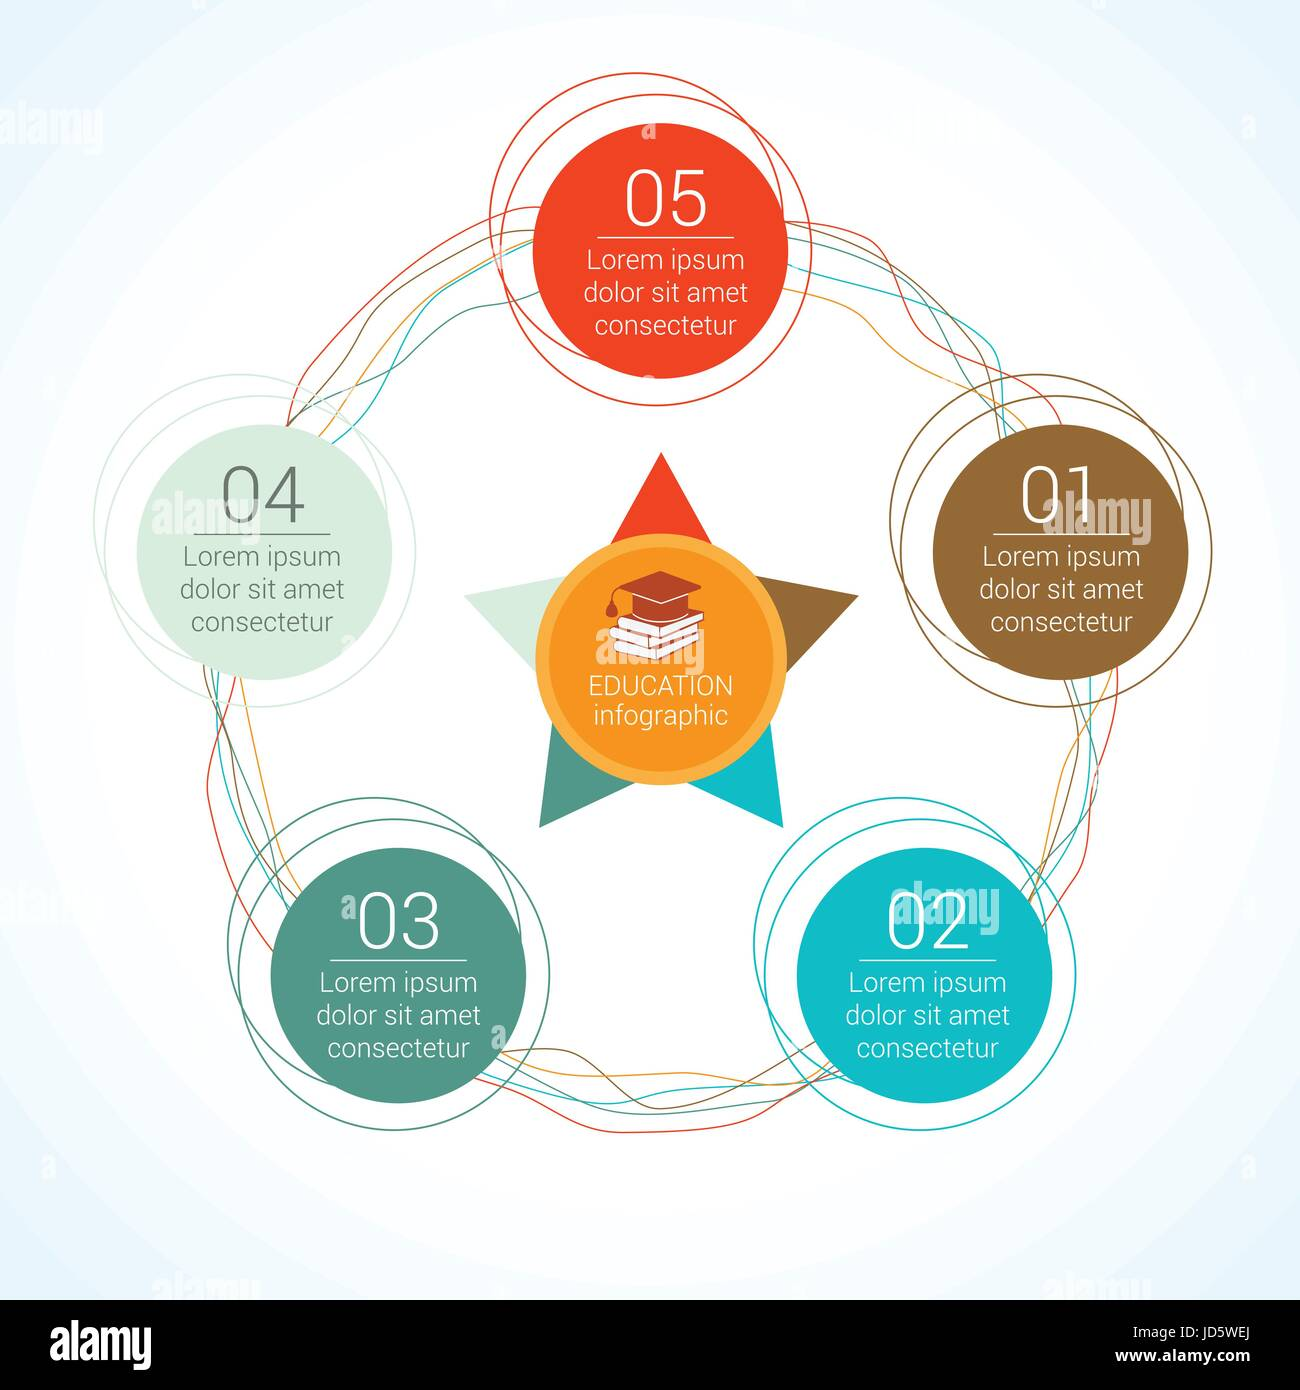 Computer Parts Stock Vector Images Alamy Battery Cell Diagram Editable Powerpoint Template Circular Education Infographic For Presentation Flat Line Chart With 5 Options